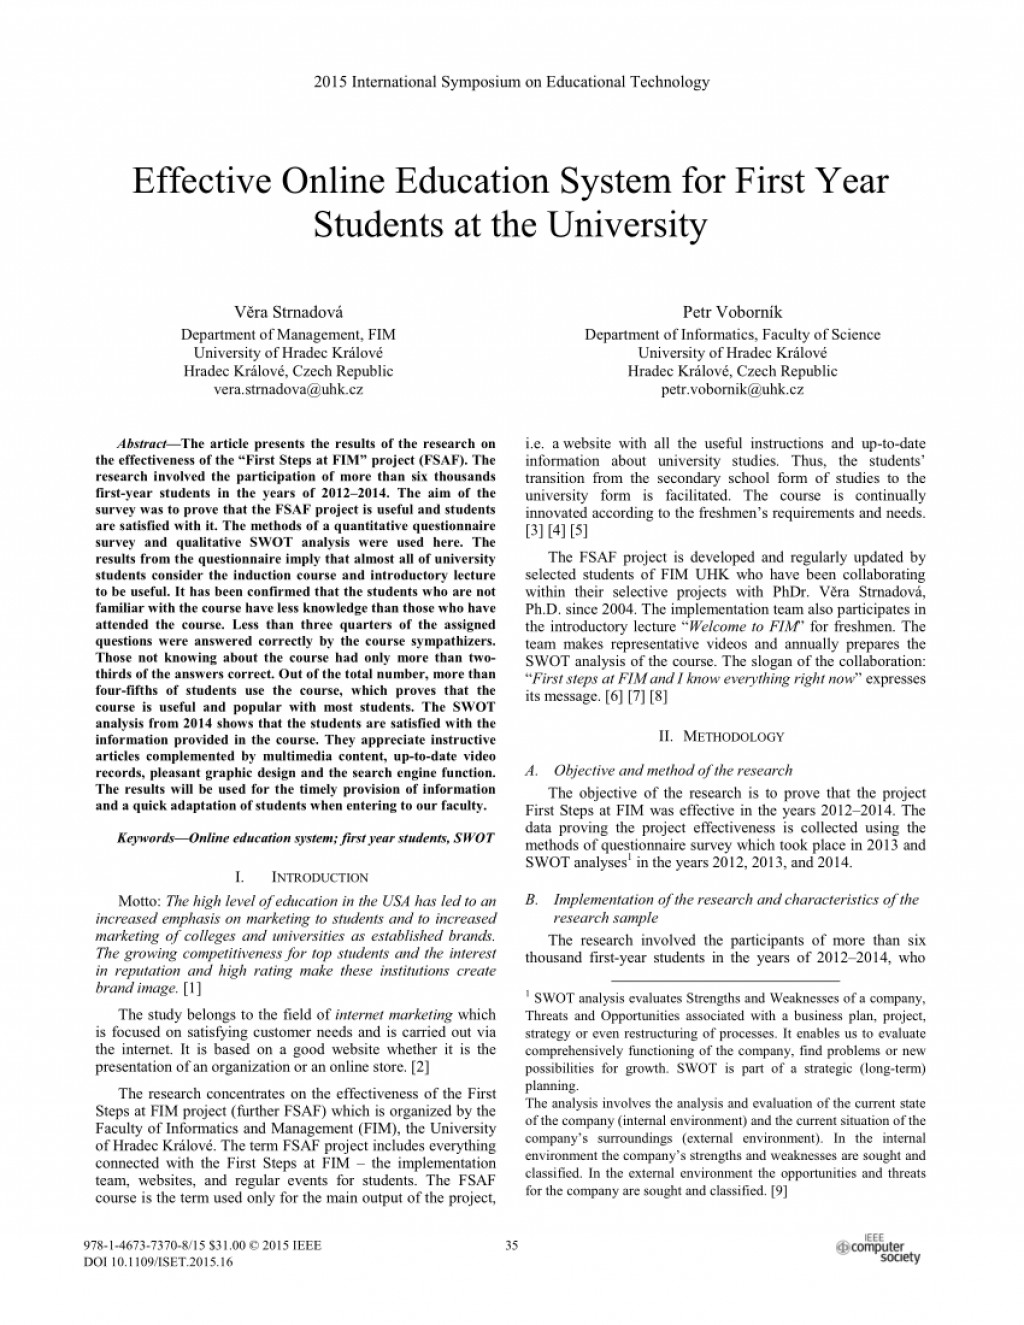 007 Effectiveness Of Online Education Research Paper Amazing Large